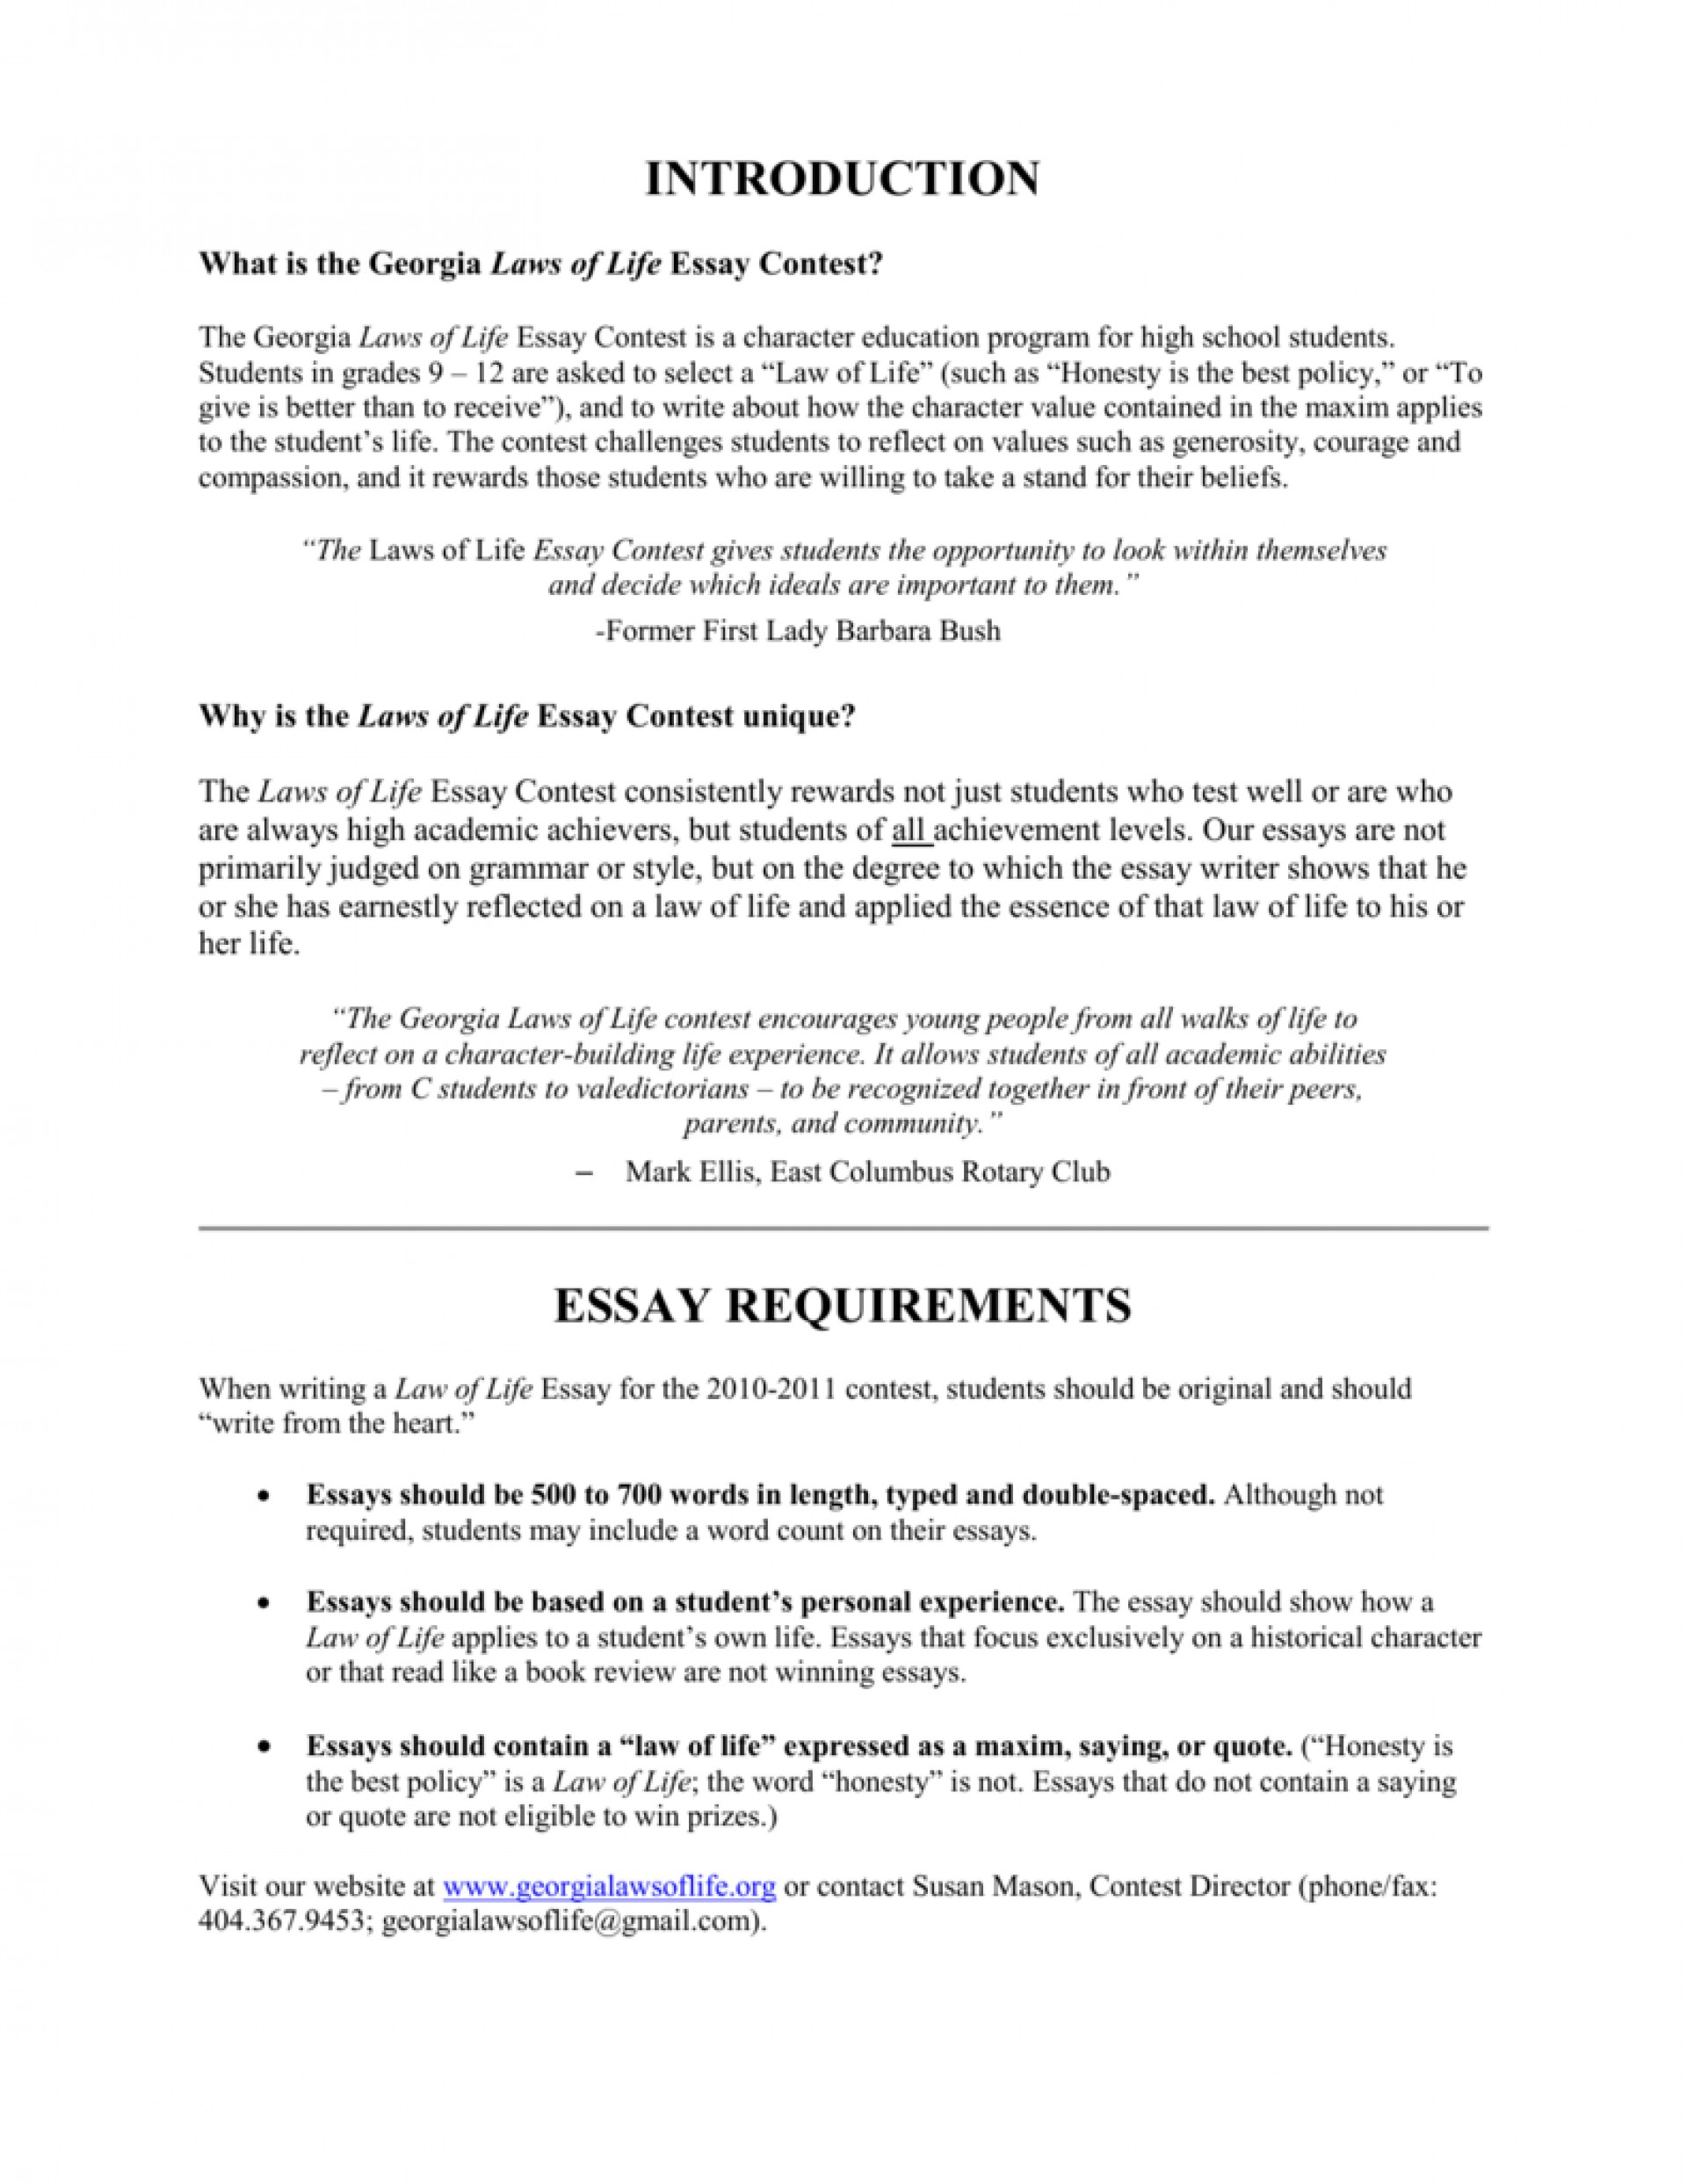 008 Importance Of Character Building Essay 008039774 1 Frightening 1920